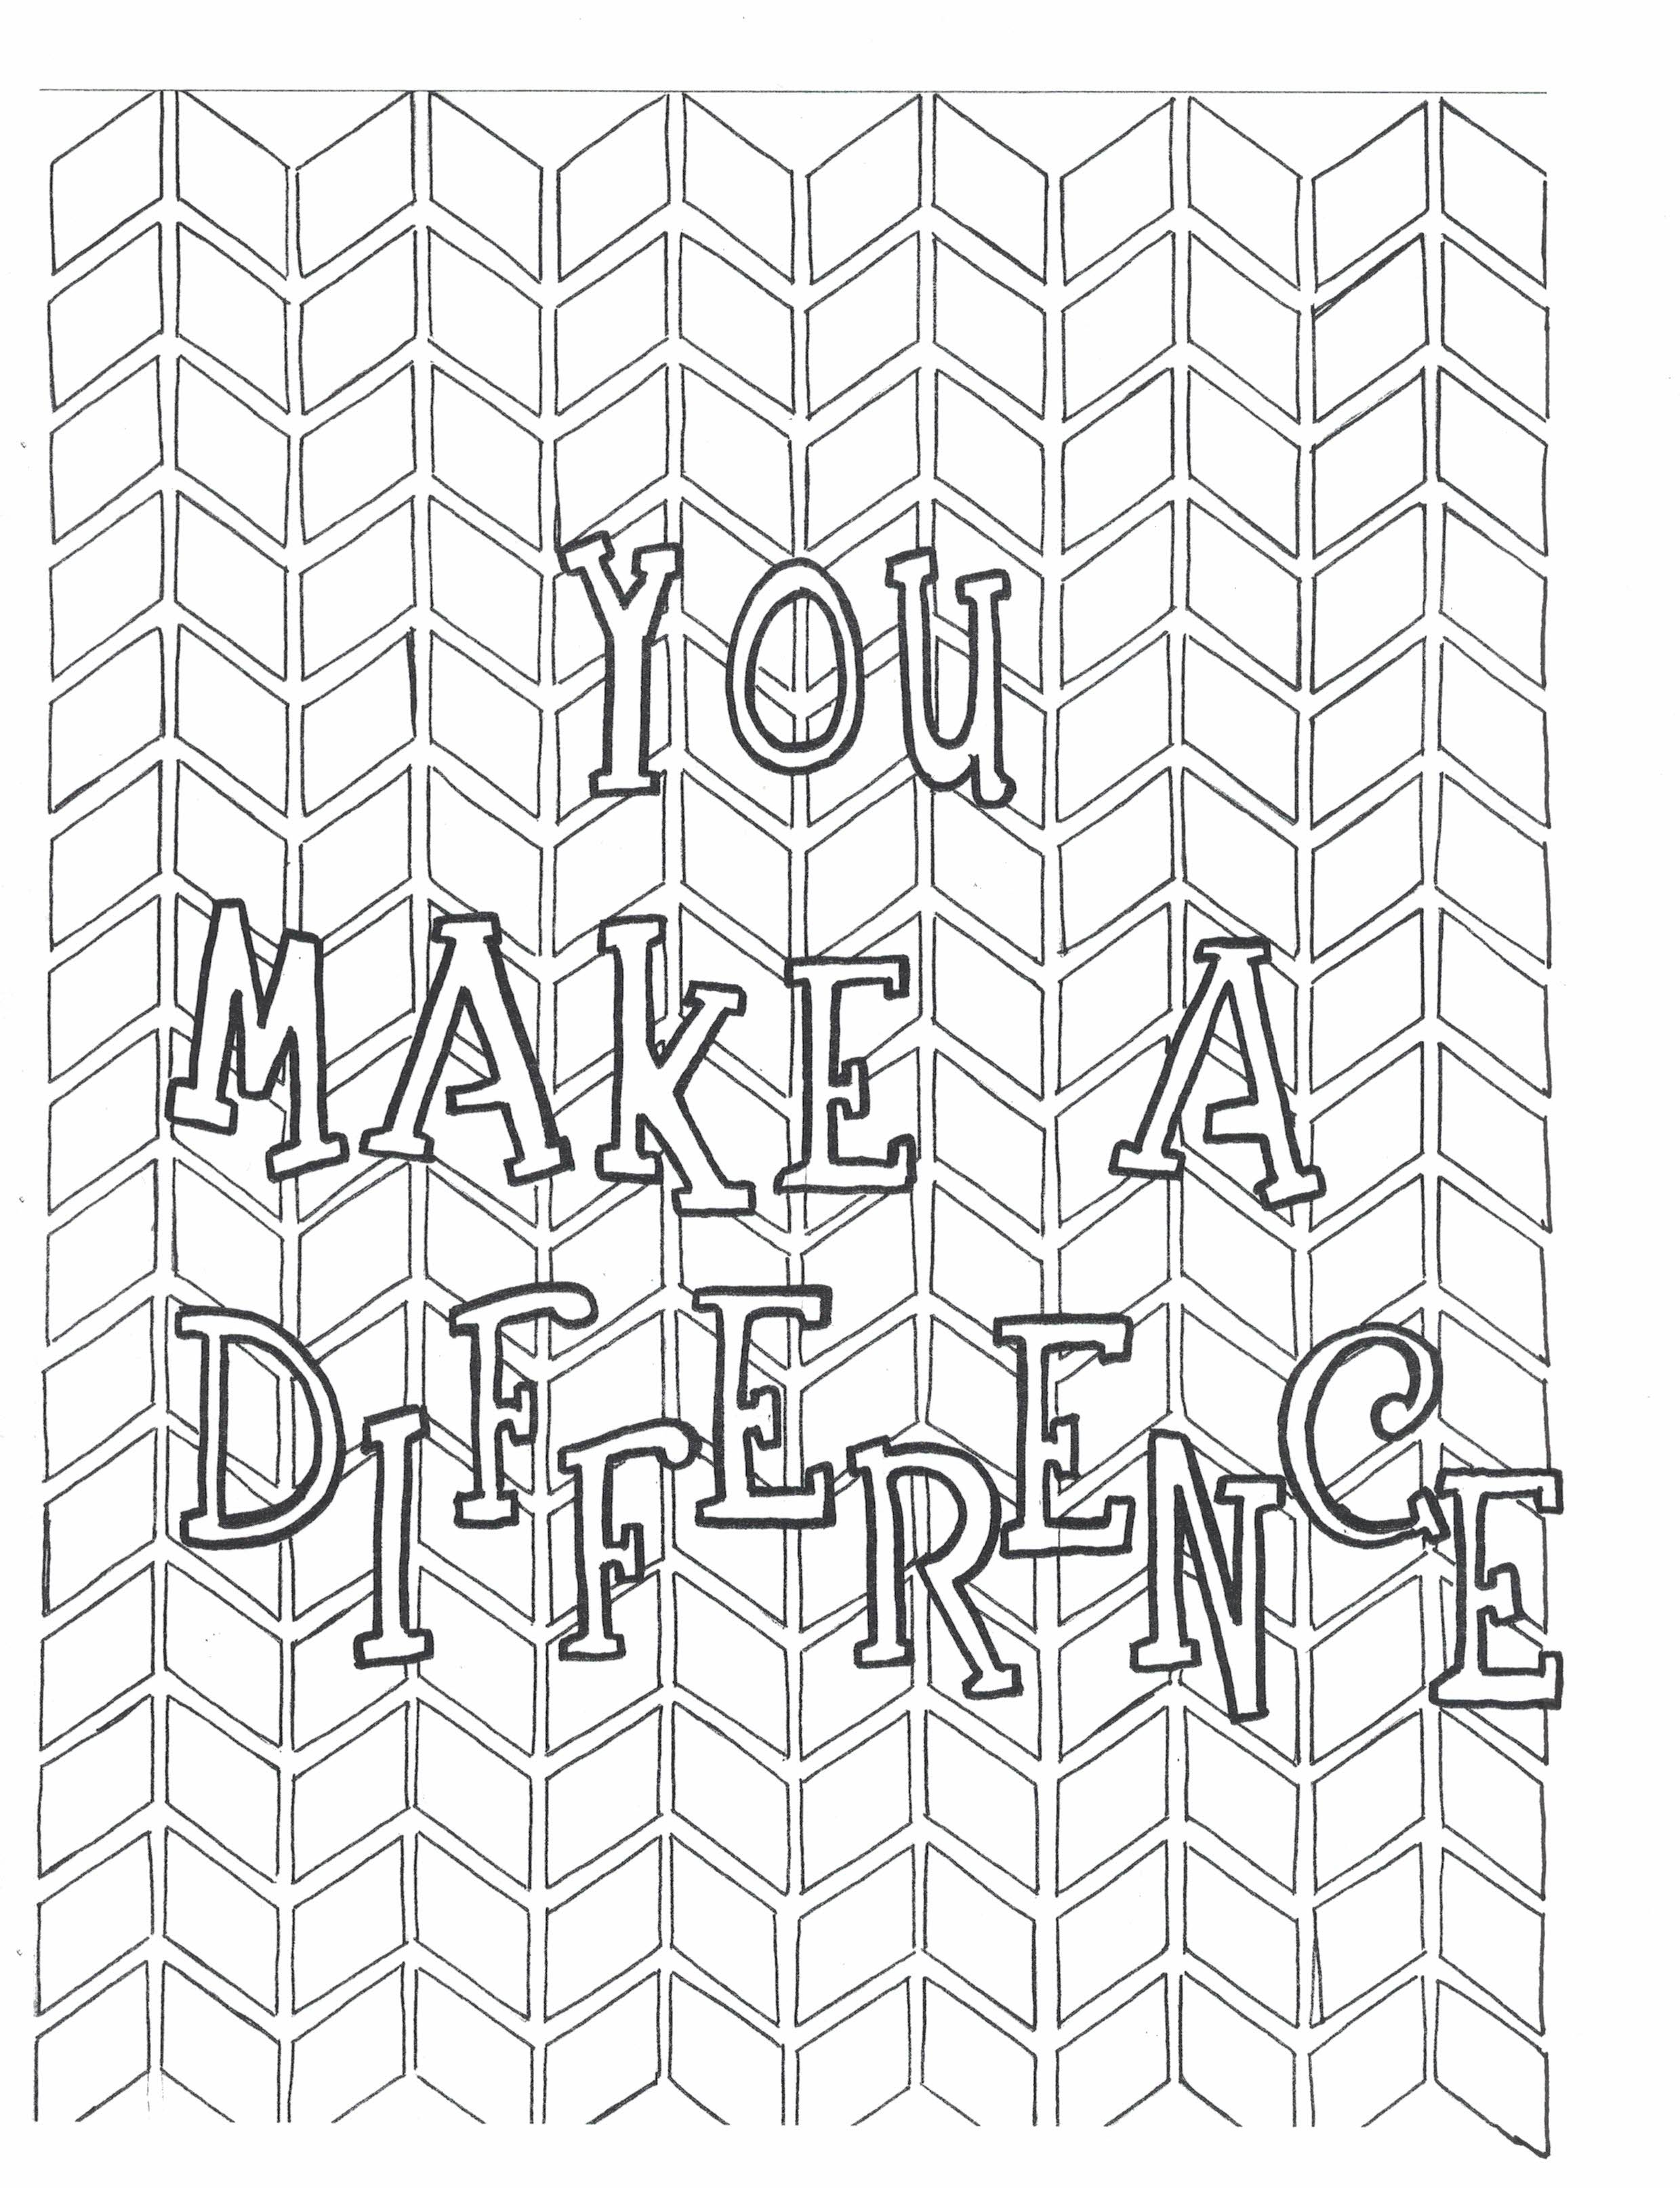 You Make A Difference Coloring Page Etsy Quote Coloring Pages Coloring Pages Coloring Books